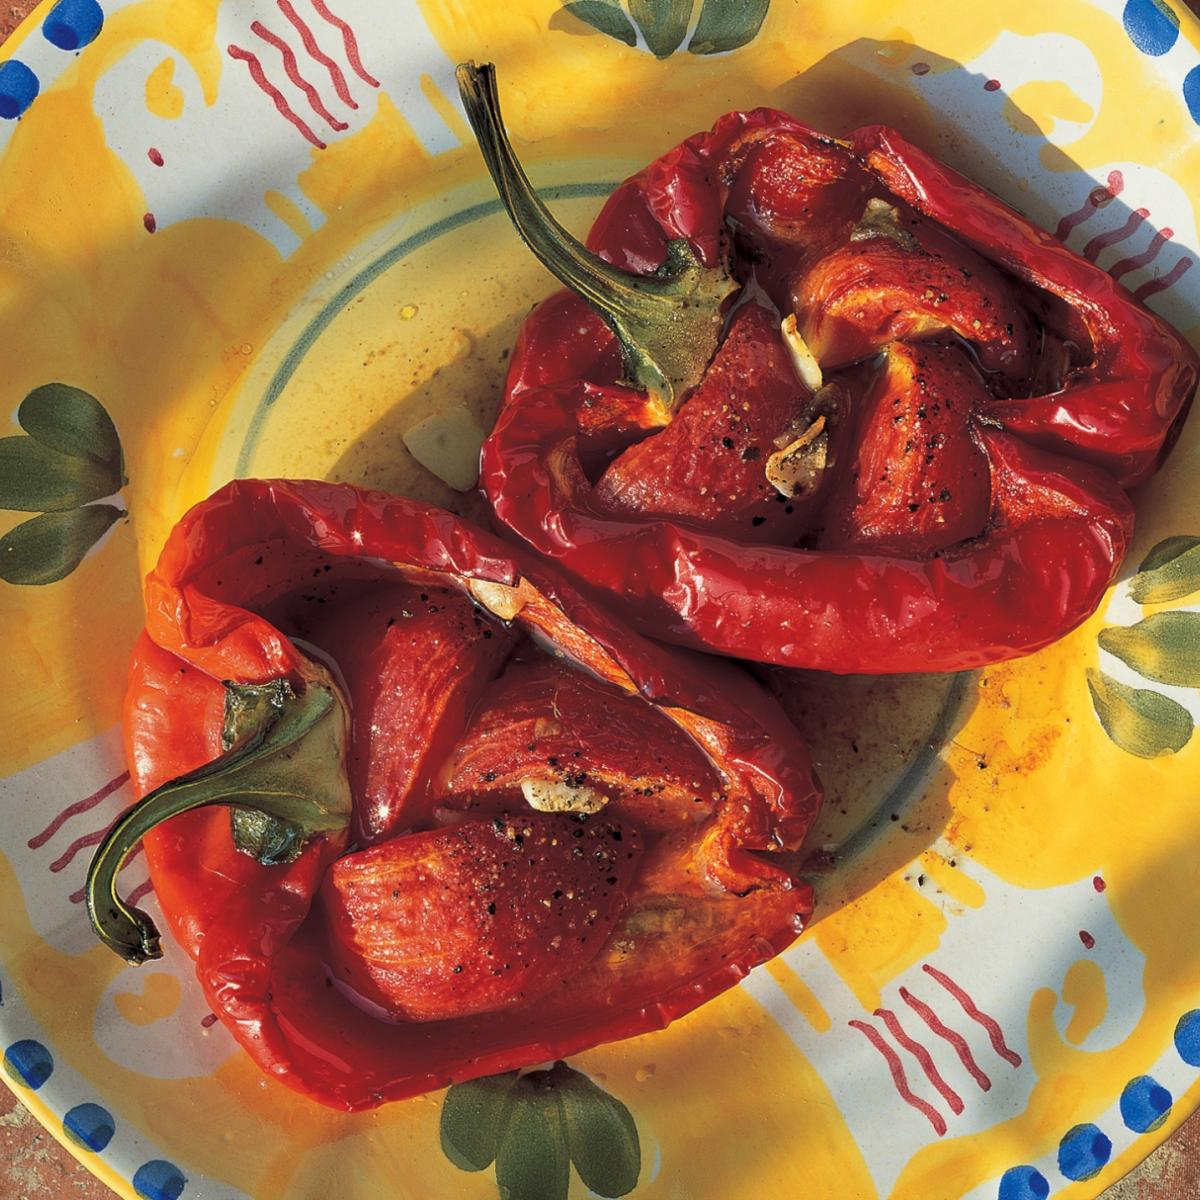 A picture of Delia's Piedmont Roasted Peppers recipe